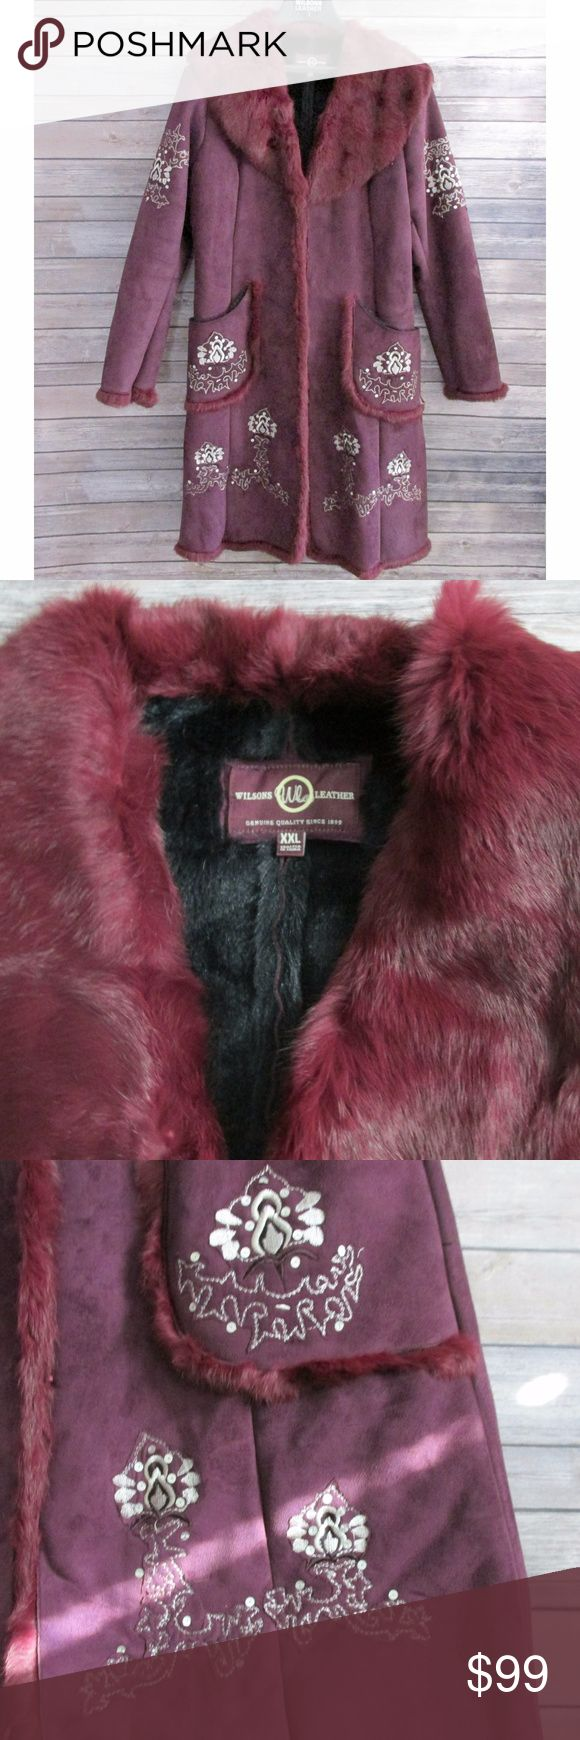 "Wilsons Leather Burgundy Fur Sherpa Coat burgundy Sherpa coat with silver stitching and sequins. The coat has dyed rabbit fur on the collar, the wrists, the hem and front closure. It is soft and gorgeous. The coat has hook closure down the front. Faux fur lining.  The coat has been worn and loved but is in excellent condition.   Condition: Pre-Owned Type: Coat Style: Heavy Coat Brand: Wilson's Leather Size: XXL Measurements: 48"" Chest, 42"" Length, 24"" Sleeve Materials: Shell Polyester, Trim…"